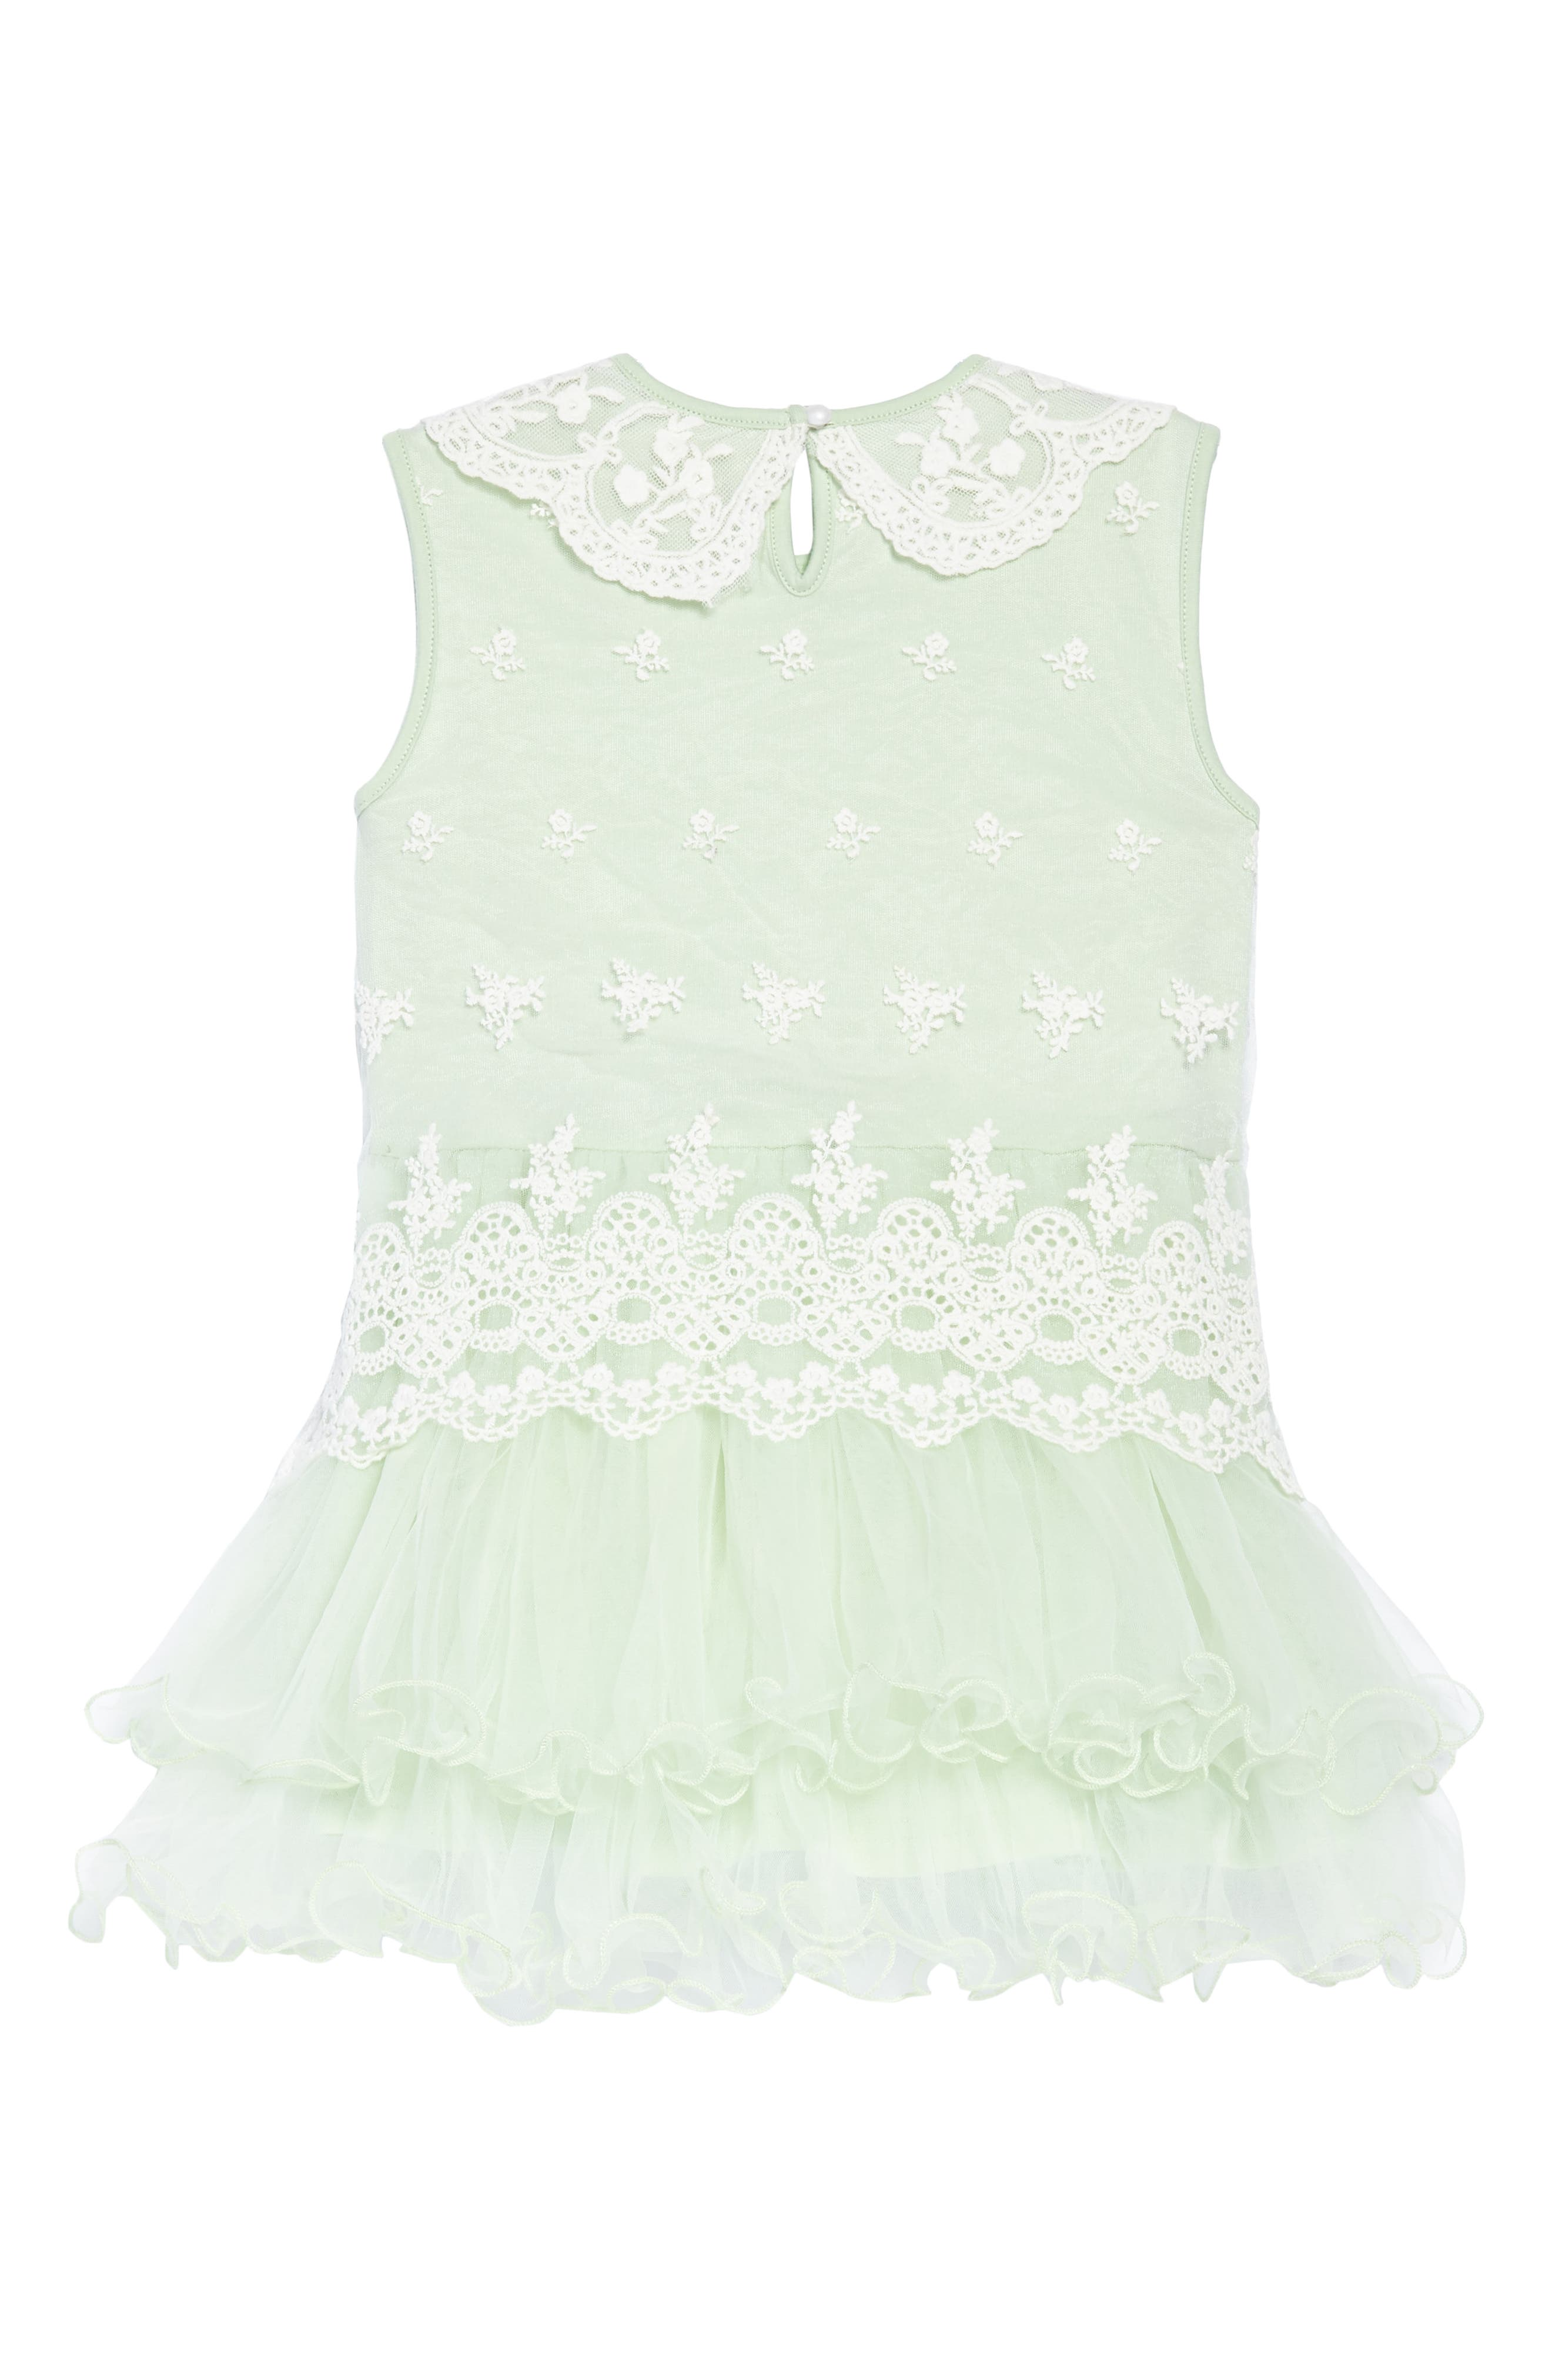 Embroidered Tulle Dress,                             Alternate thumbnail 2, color,                             Mint